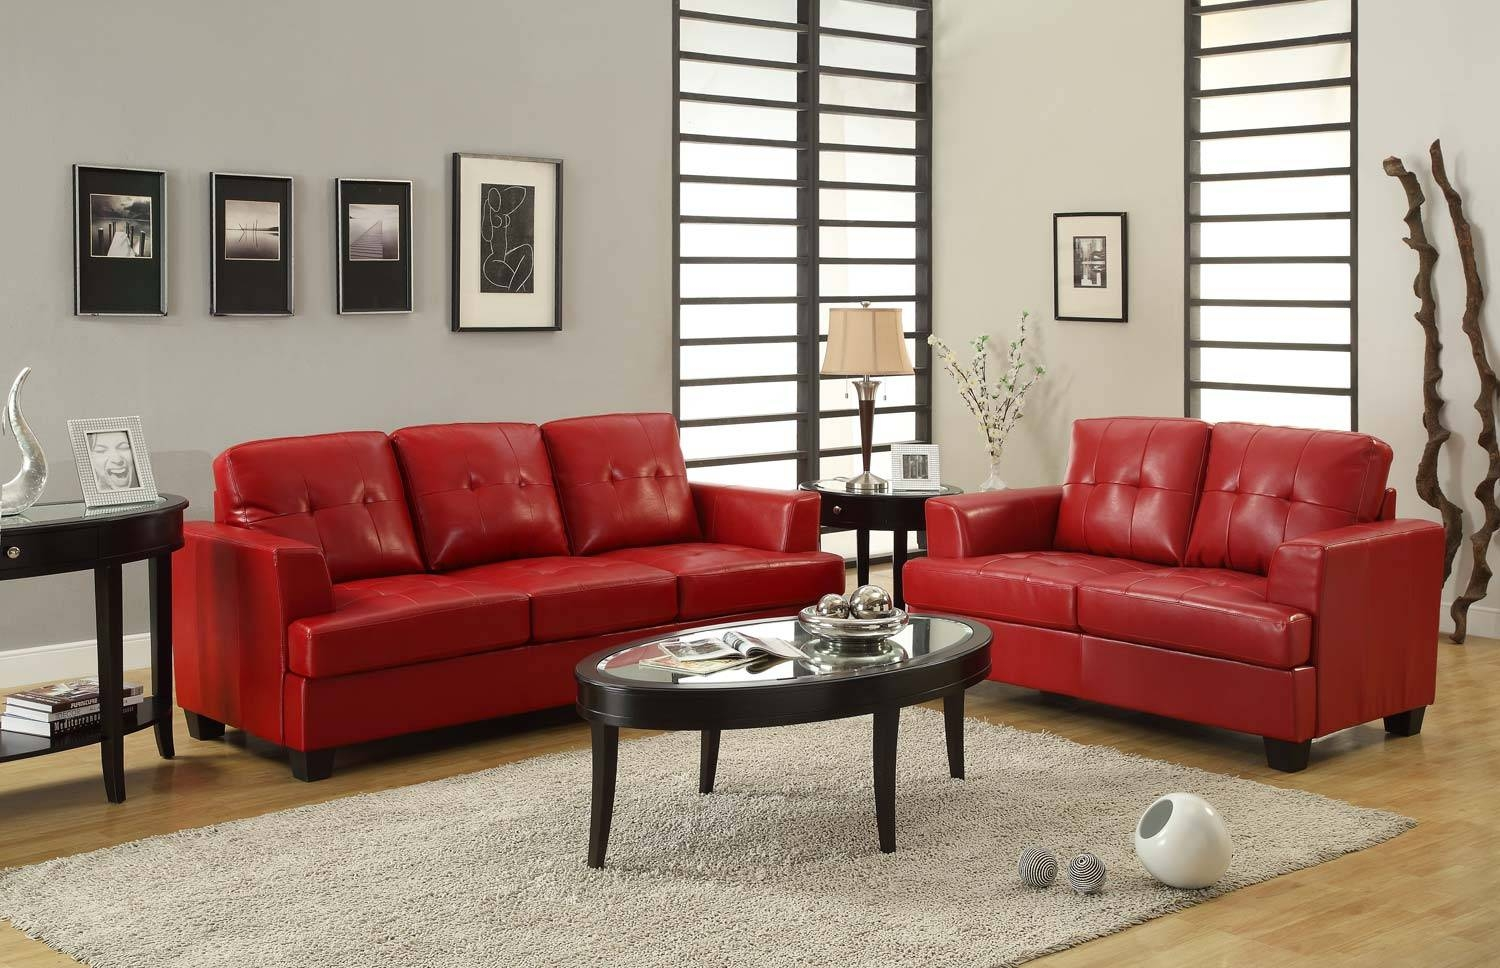 Homelegance Keaton Sofa Set - Red - Bonded Leather Match U9747Red for Red Sofas and Chairs (Image 10 of 30)